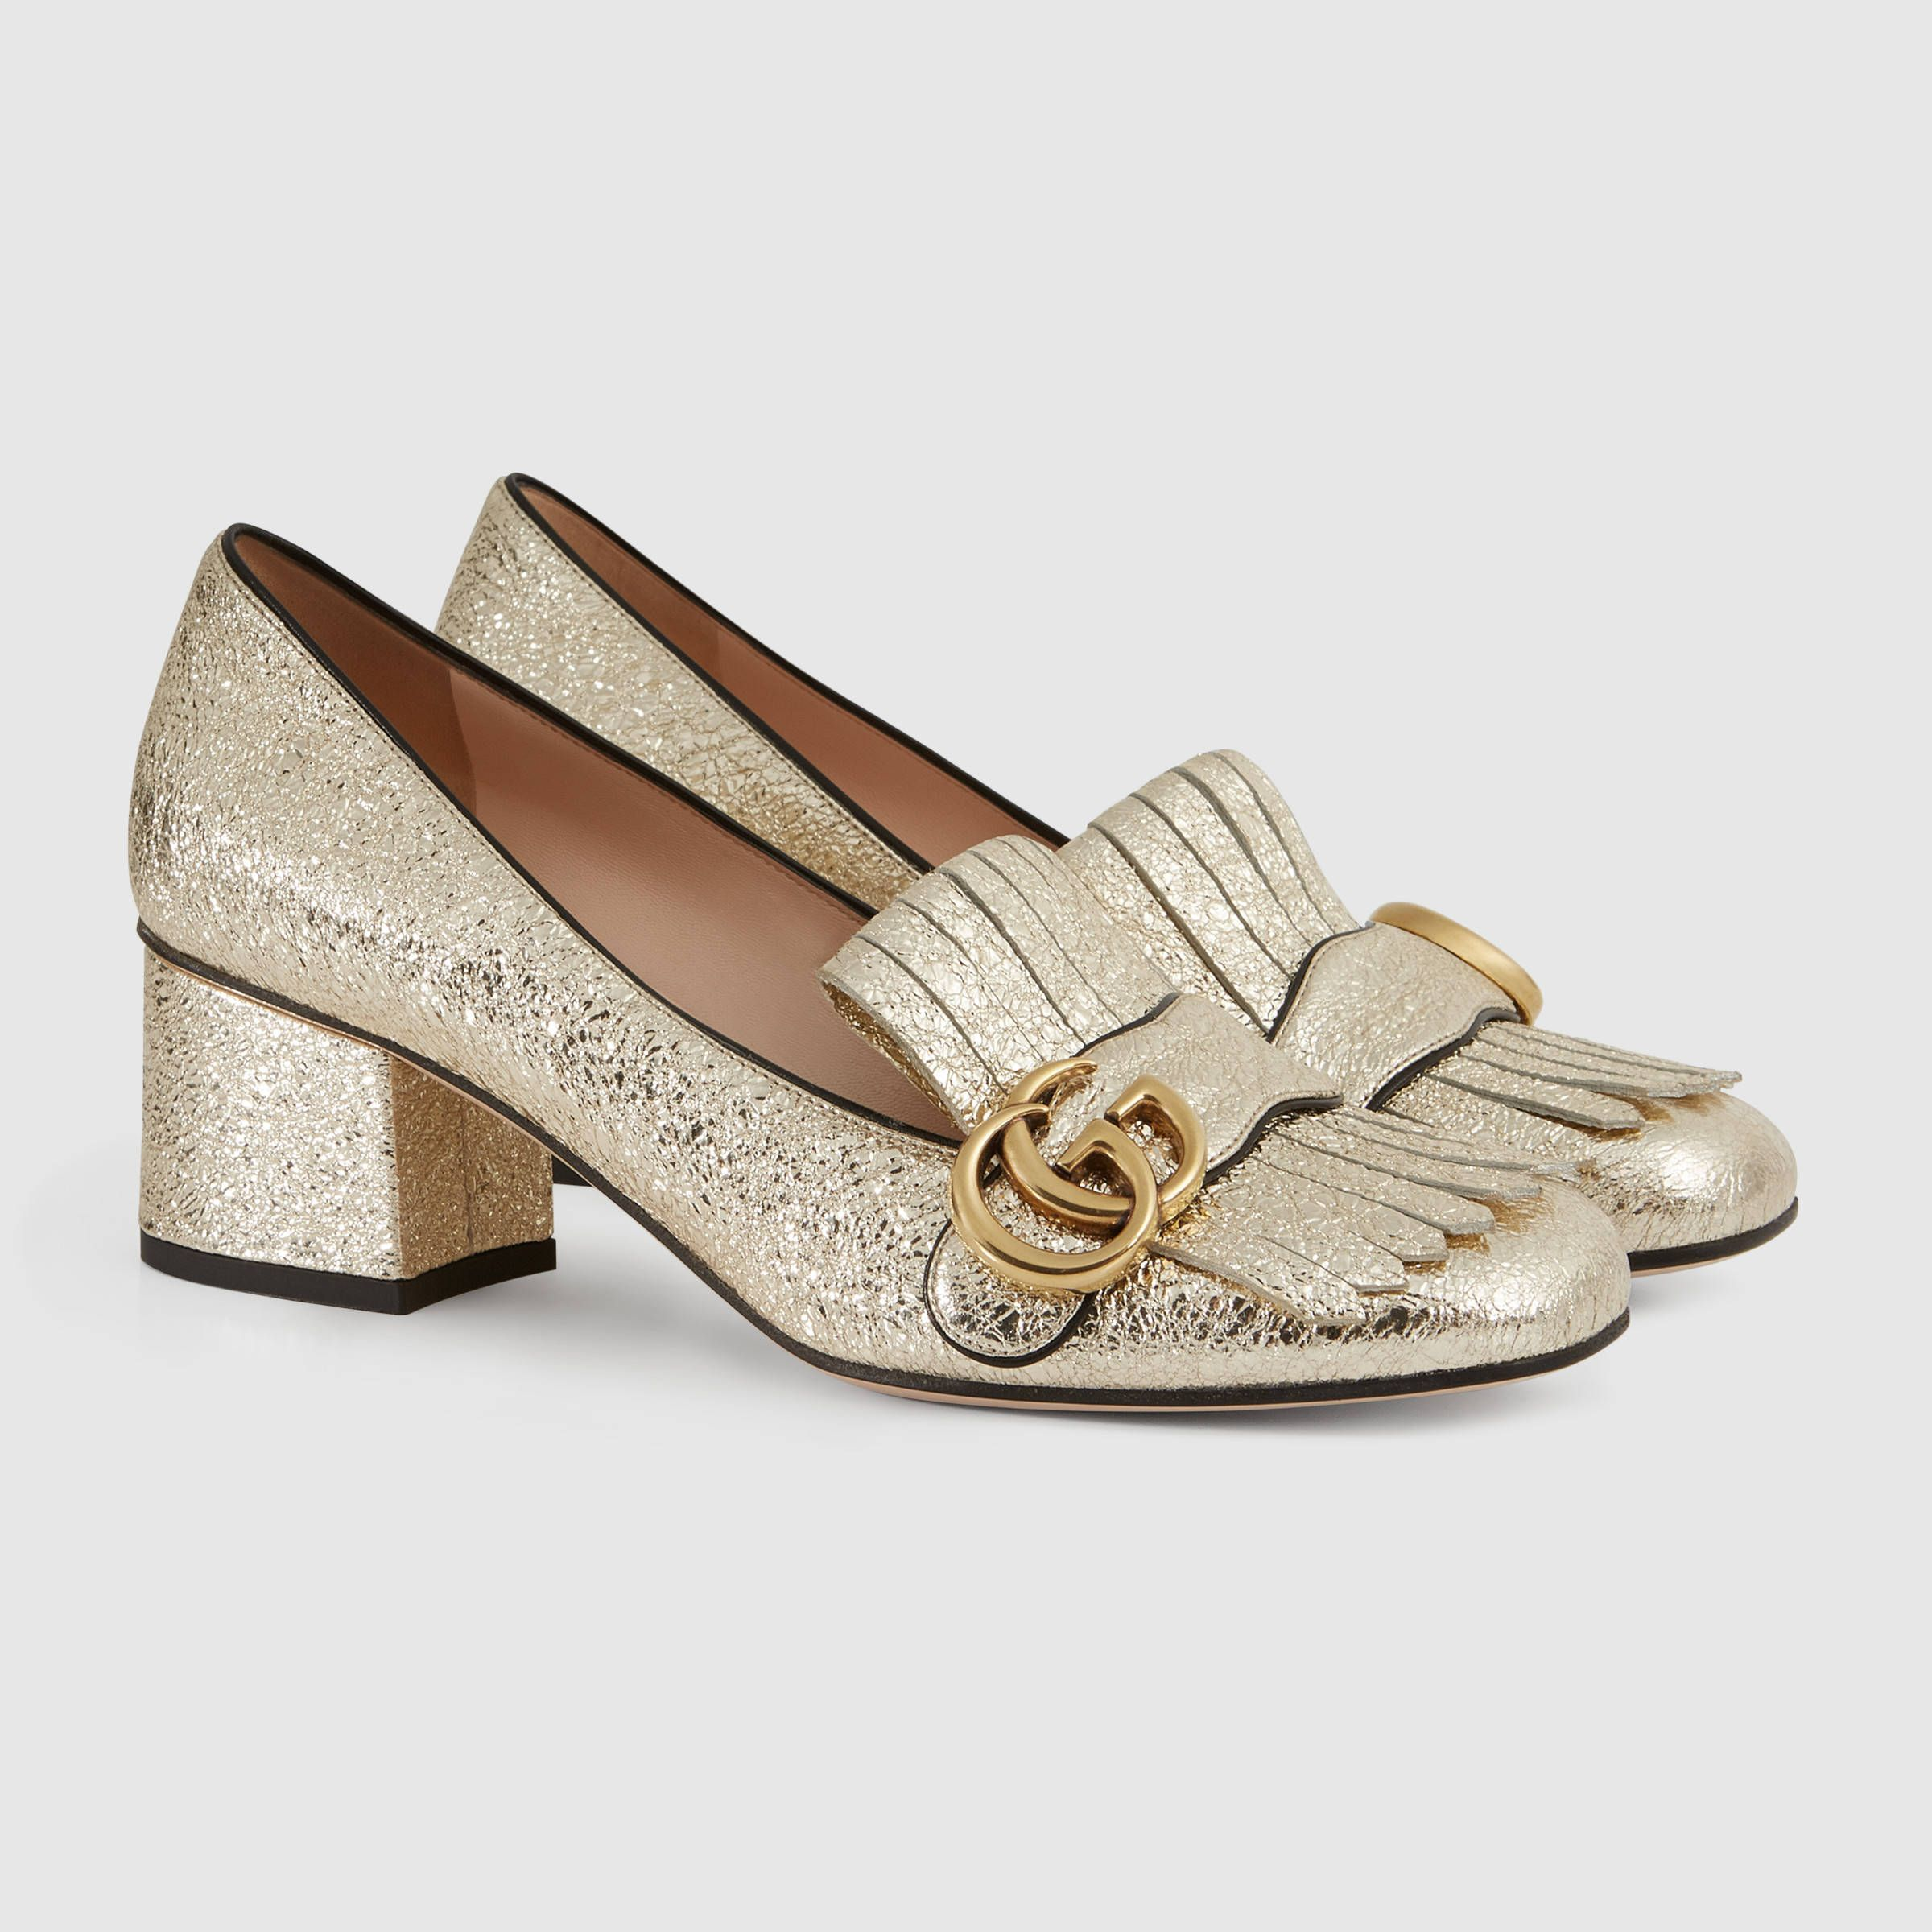 351a07abbea Gucci Women - Gucci Metallic Leather mid-heel pumps -  795.00